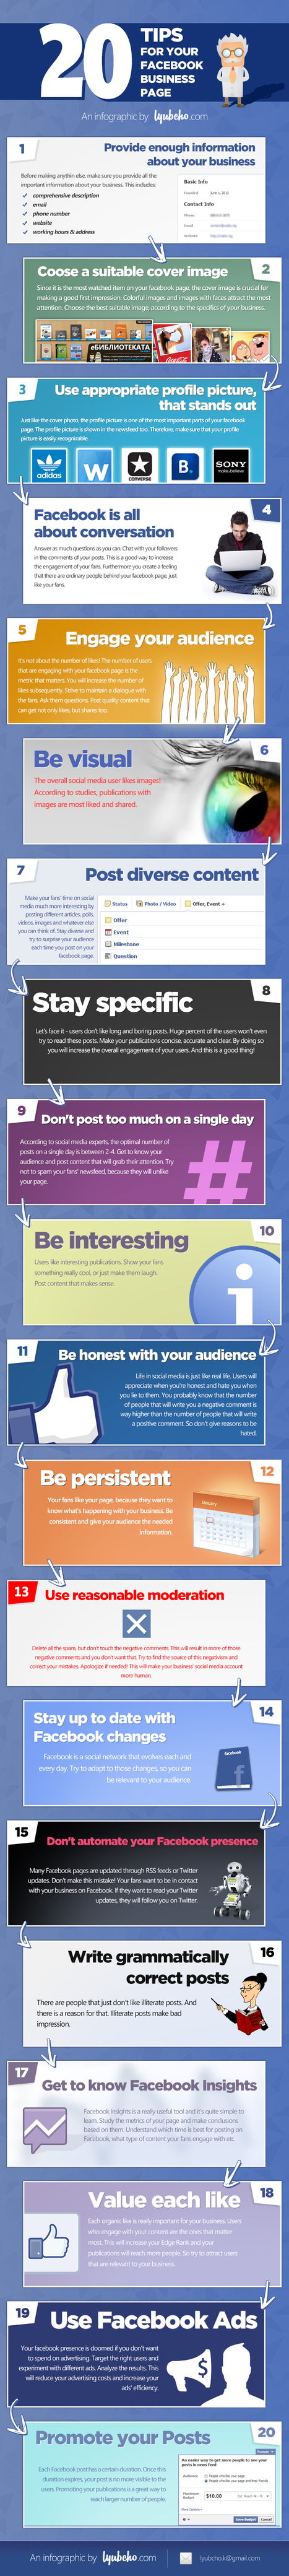 Infographic: 20 Tips for your Facebook Business Page | Social Media and E-Marketing | Scoop.it